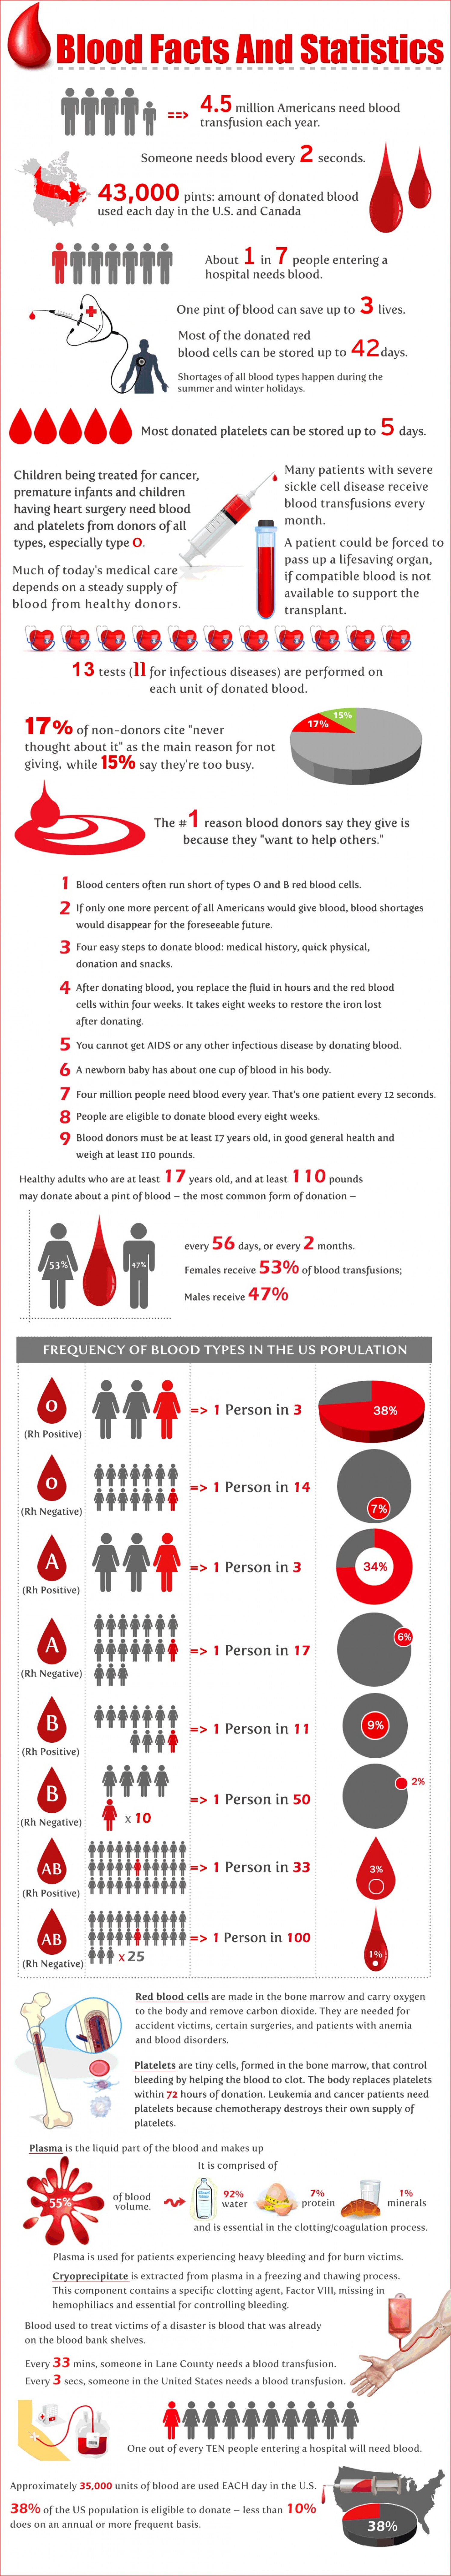 Blood Facts and Statistics Infographic